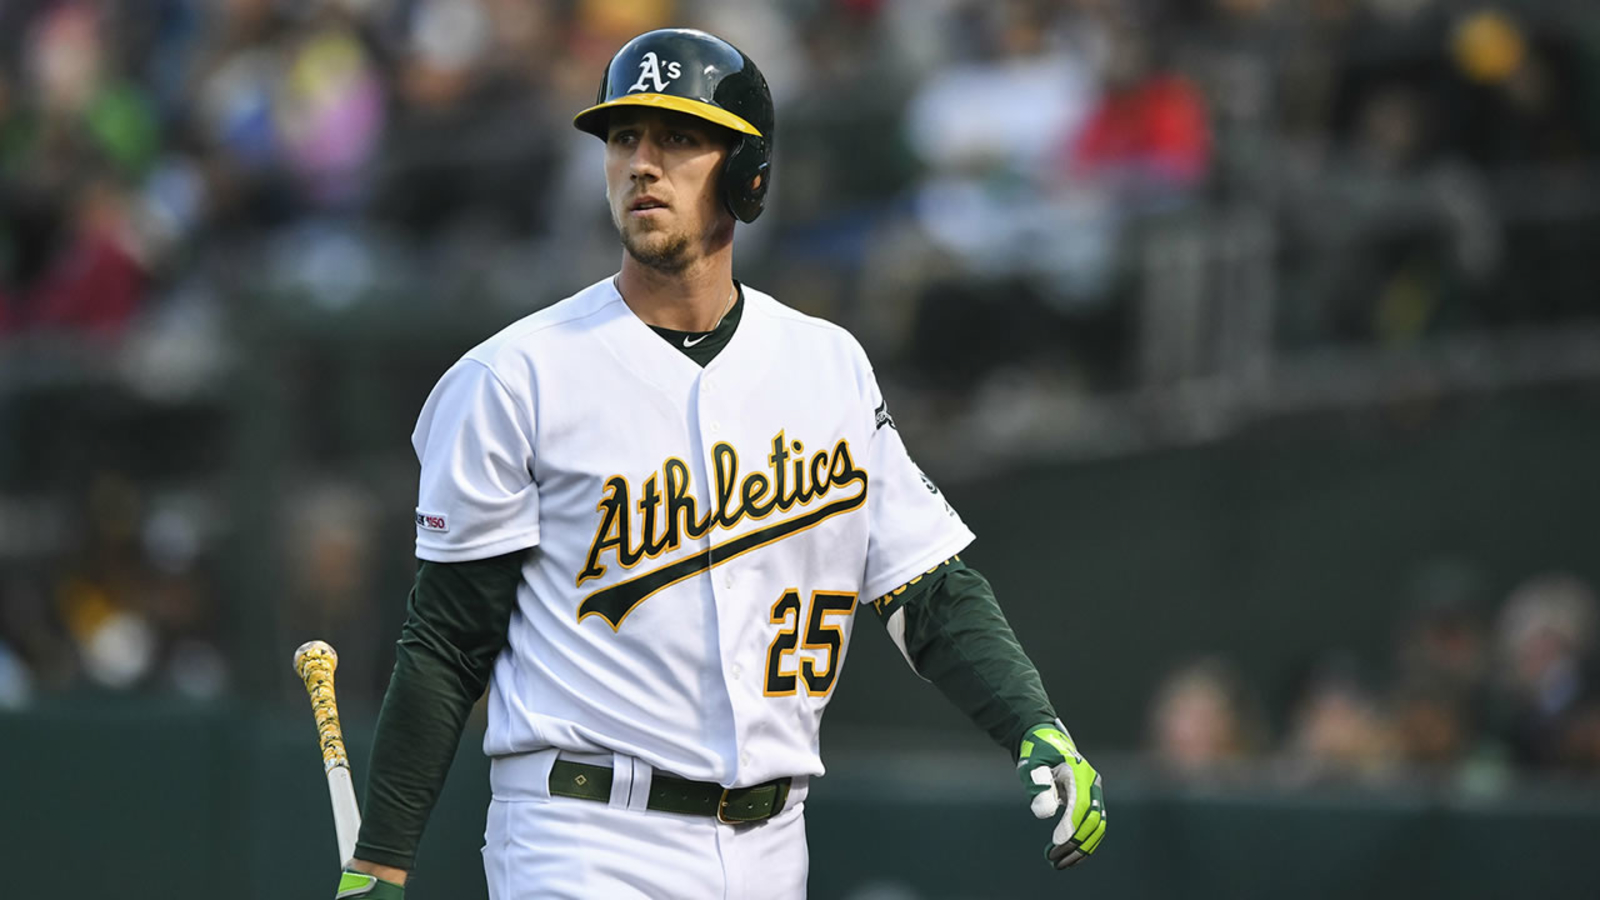 Pandemic isn't stopping A's Piscotty's fight for ALS cure